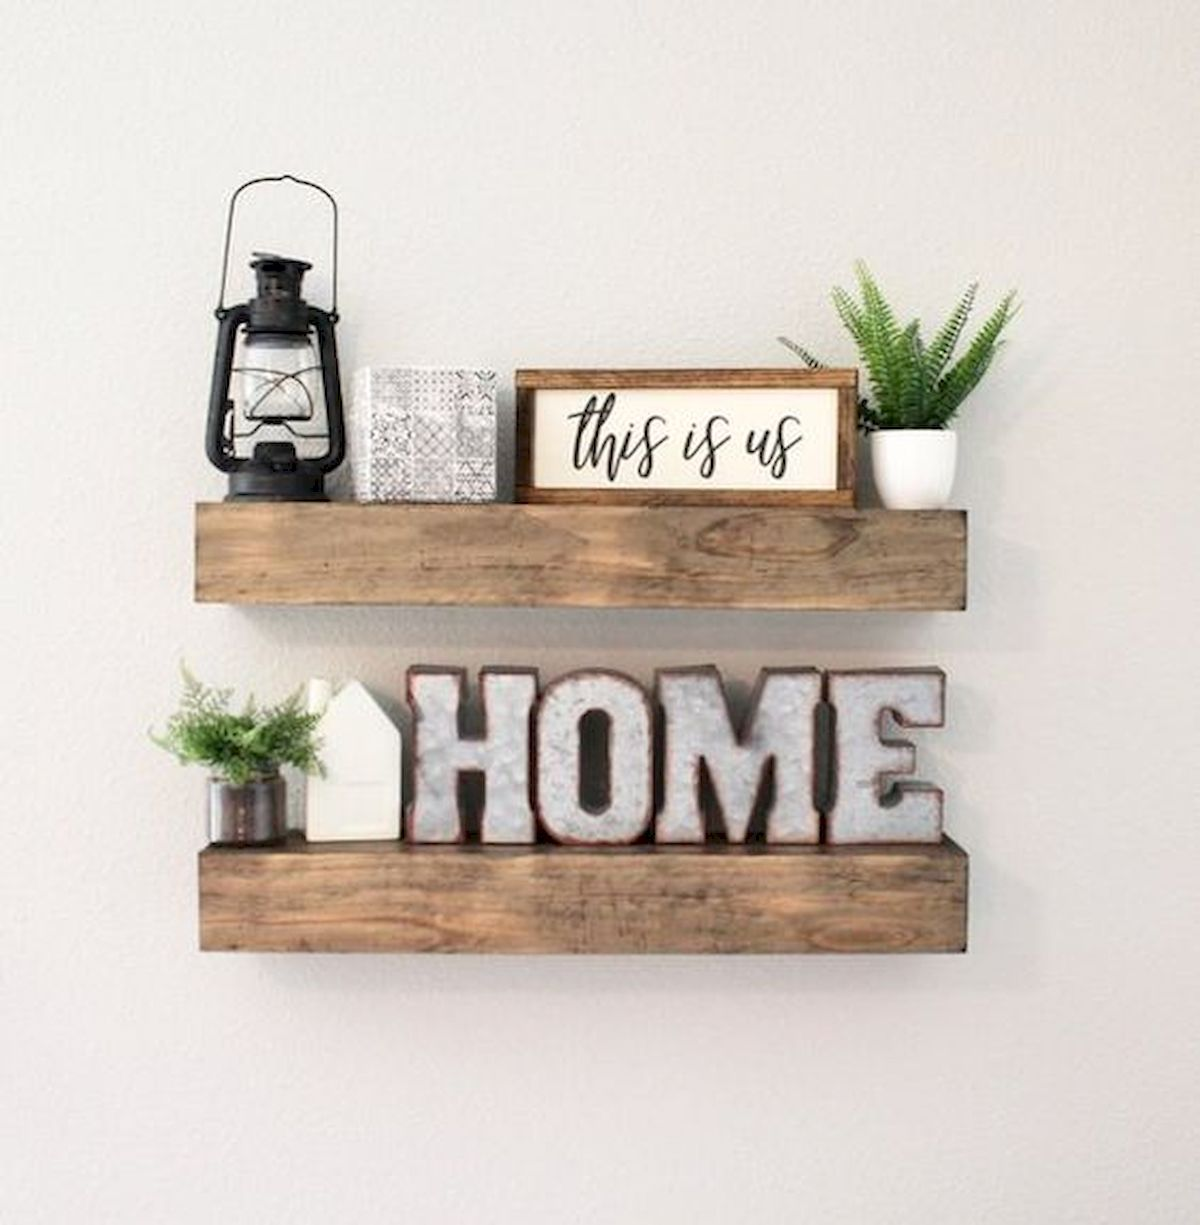 33 DIY Home Decor Ideas On A Budget Perfect For Beginners (21)